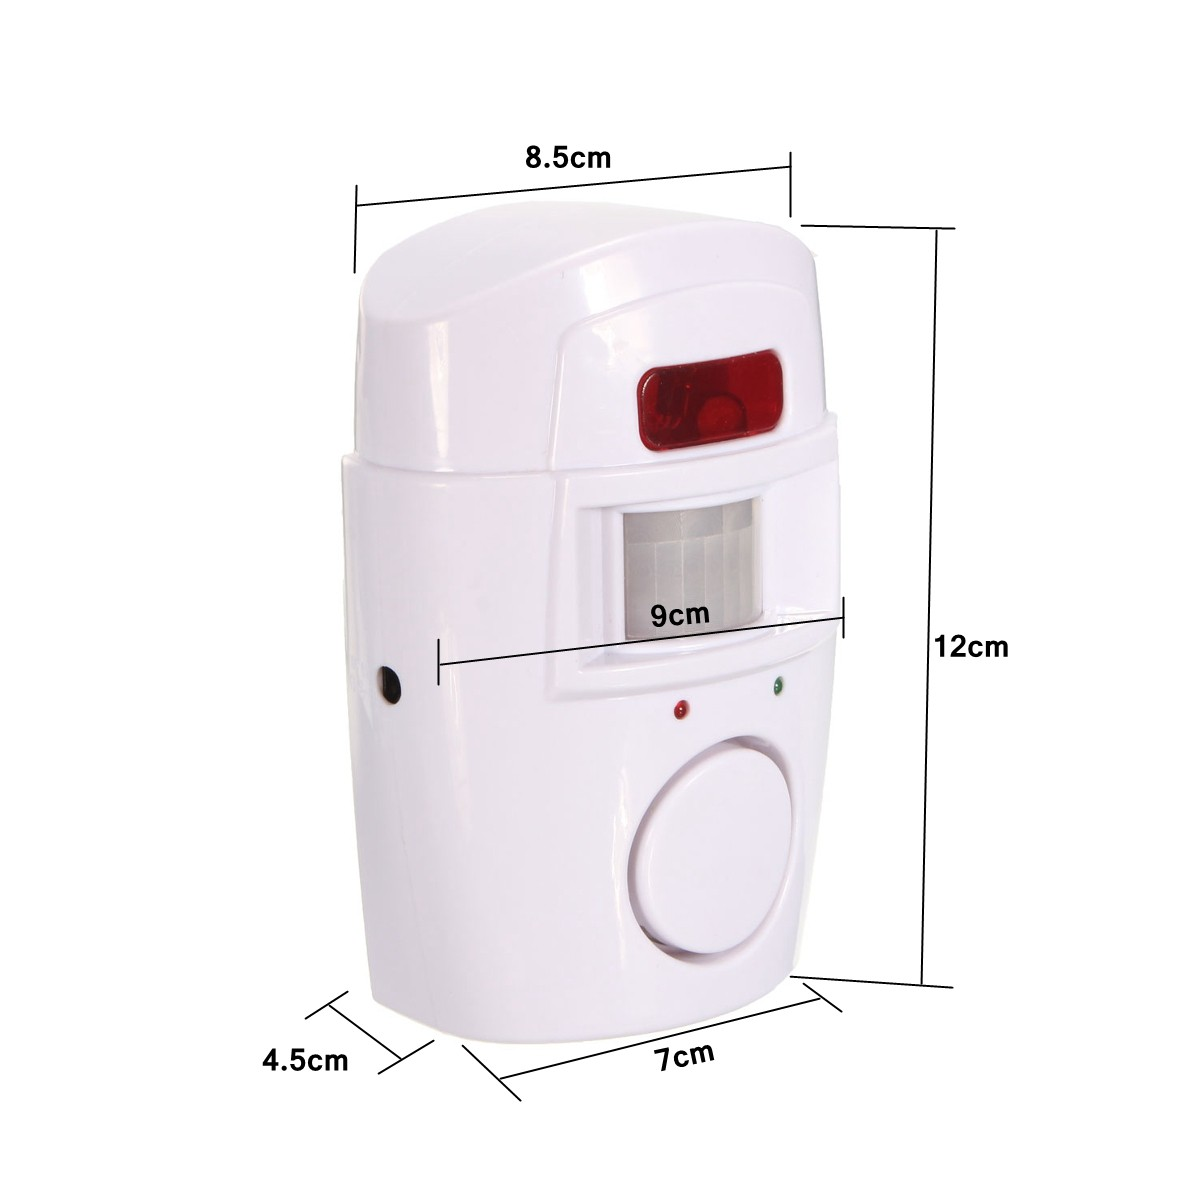 2 In 1 Motion Wireless Infrared Security Alarm Chime Alarm Home Detector with Remote Control+Holder